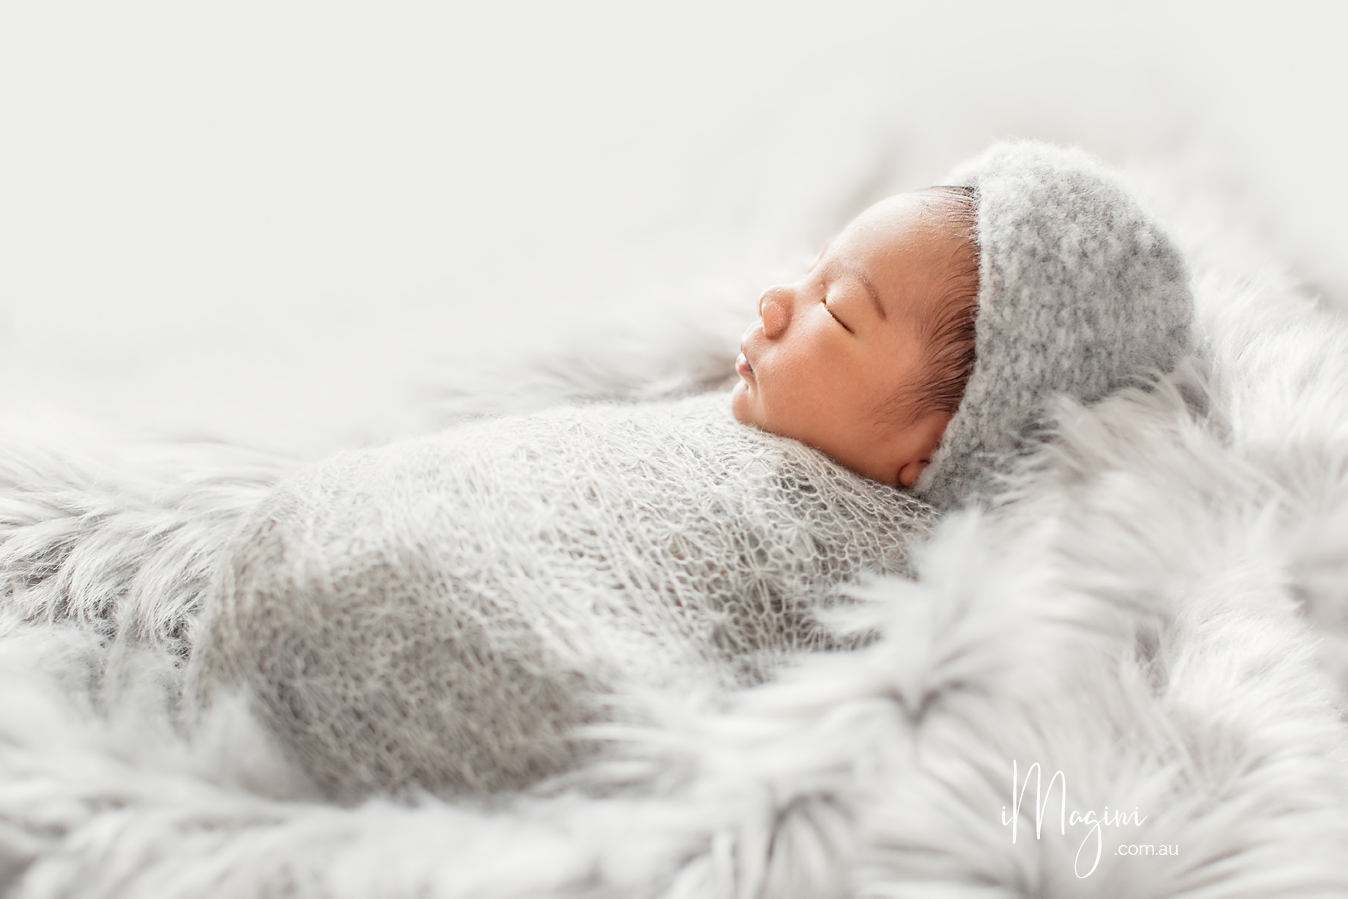 20190228_Nathaniel Newborn_004 copy